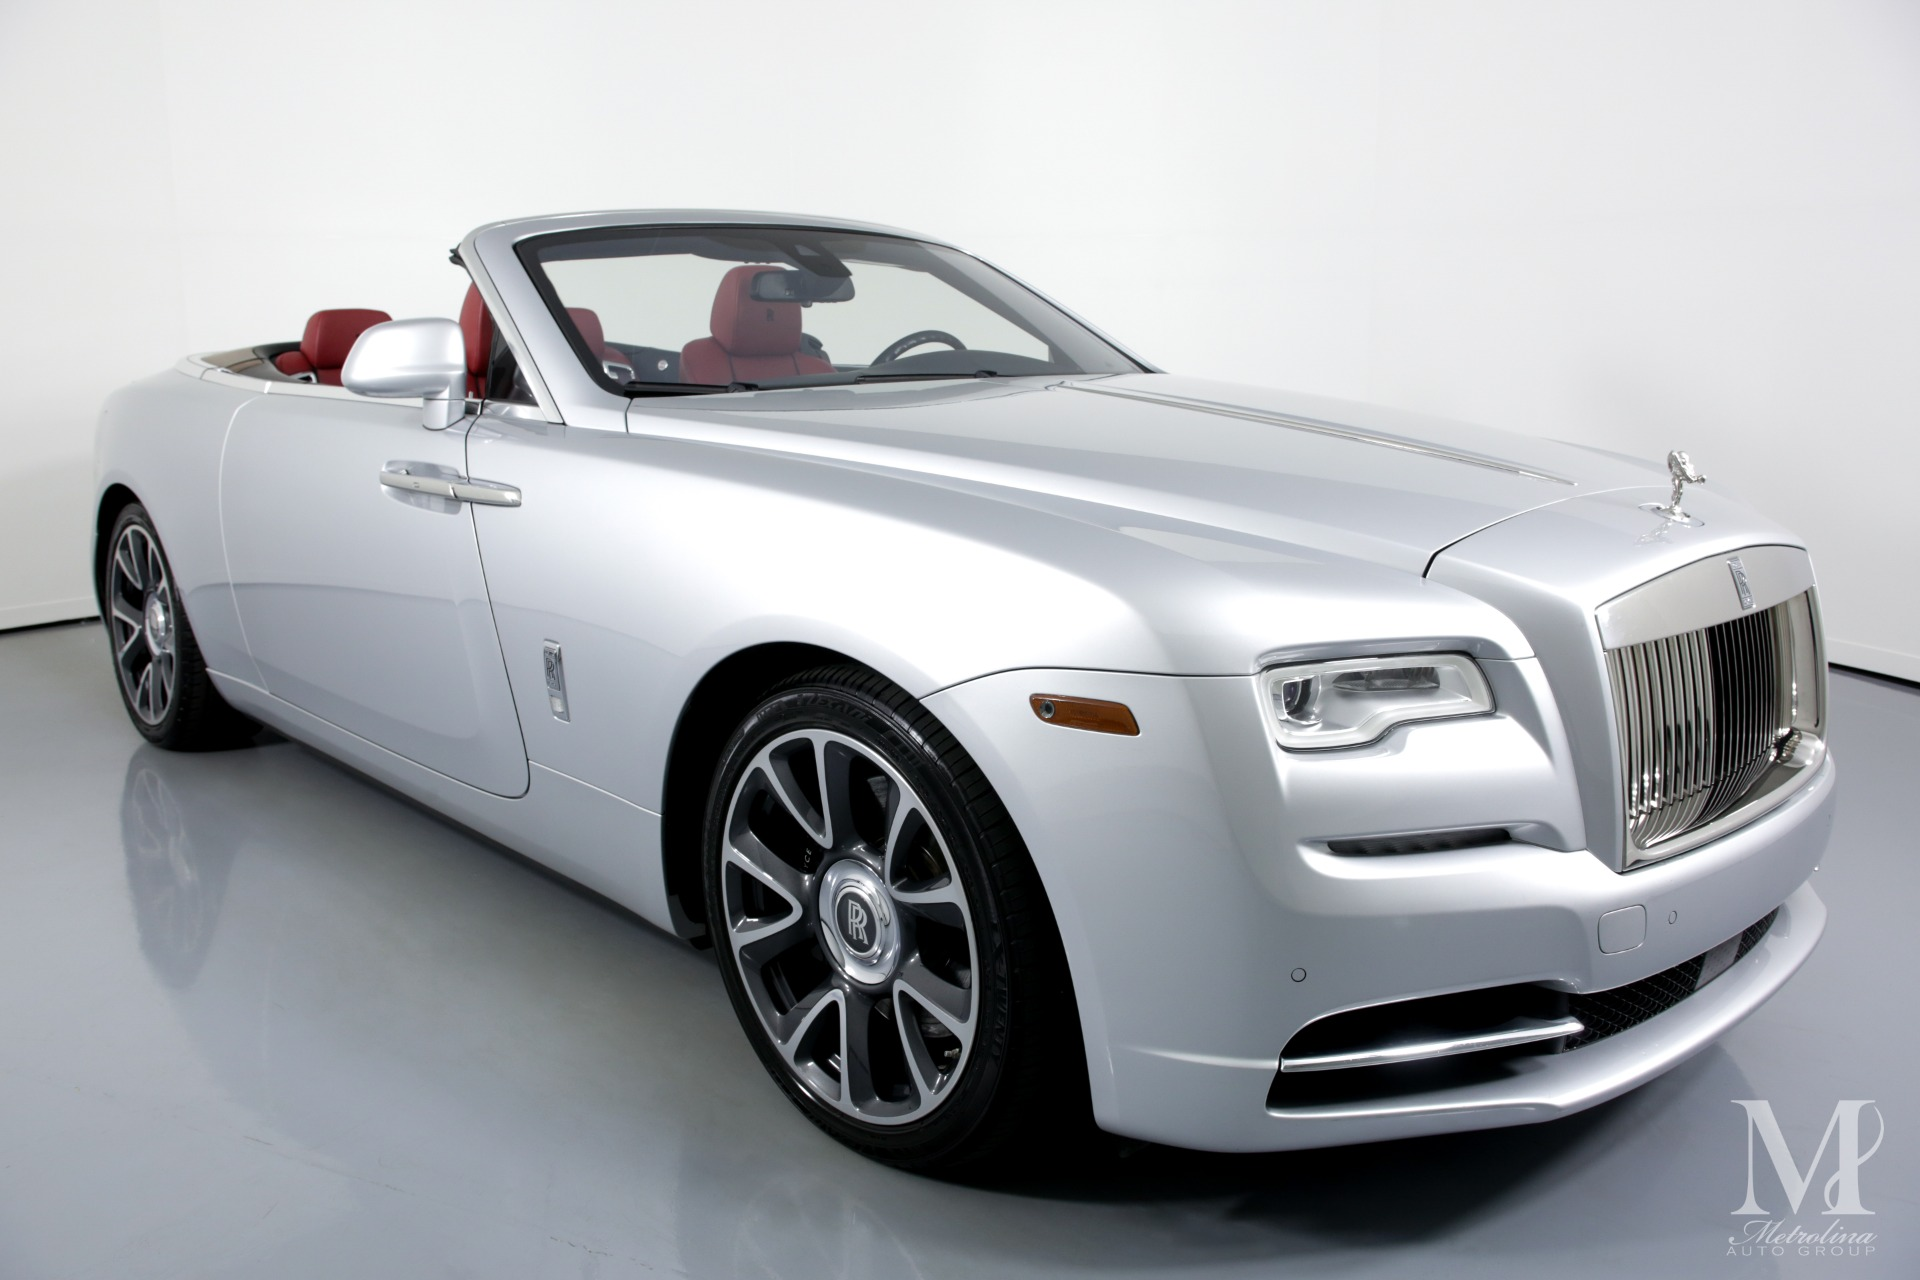 Used 2016 Rolls-Royce Dawn Base 2dr Convertible for sale $227,456 at Metrolina Auto Group in Charlotte NC 28217 - 3